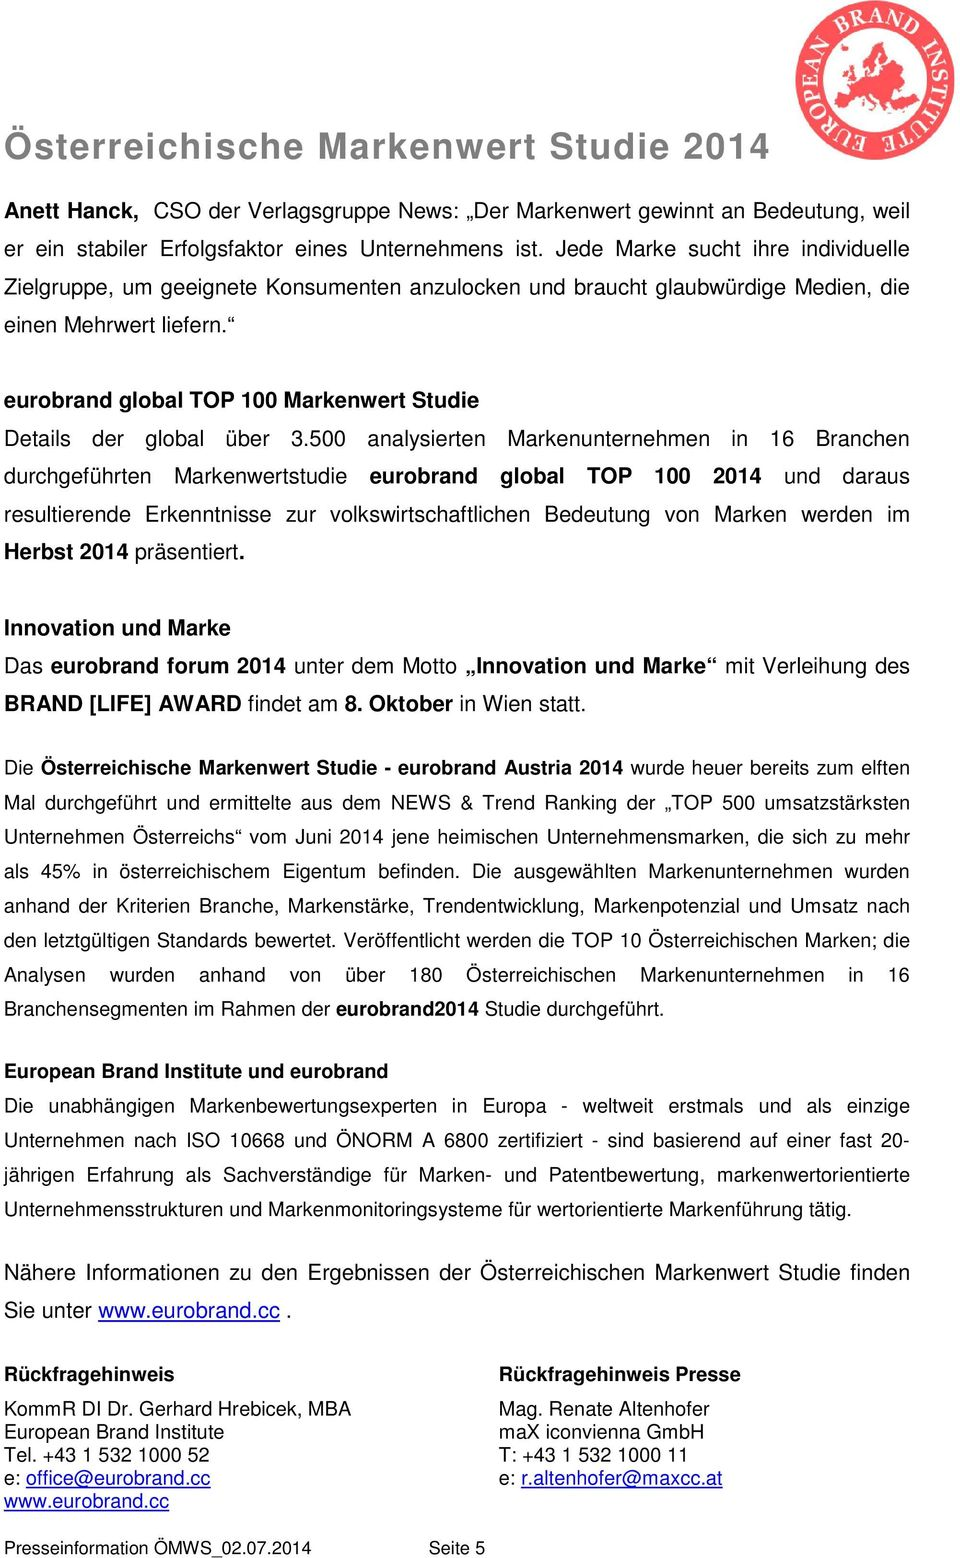 eurobrand global TOP 100 Markenwert Studie Details der global über 3.